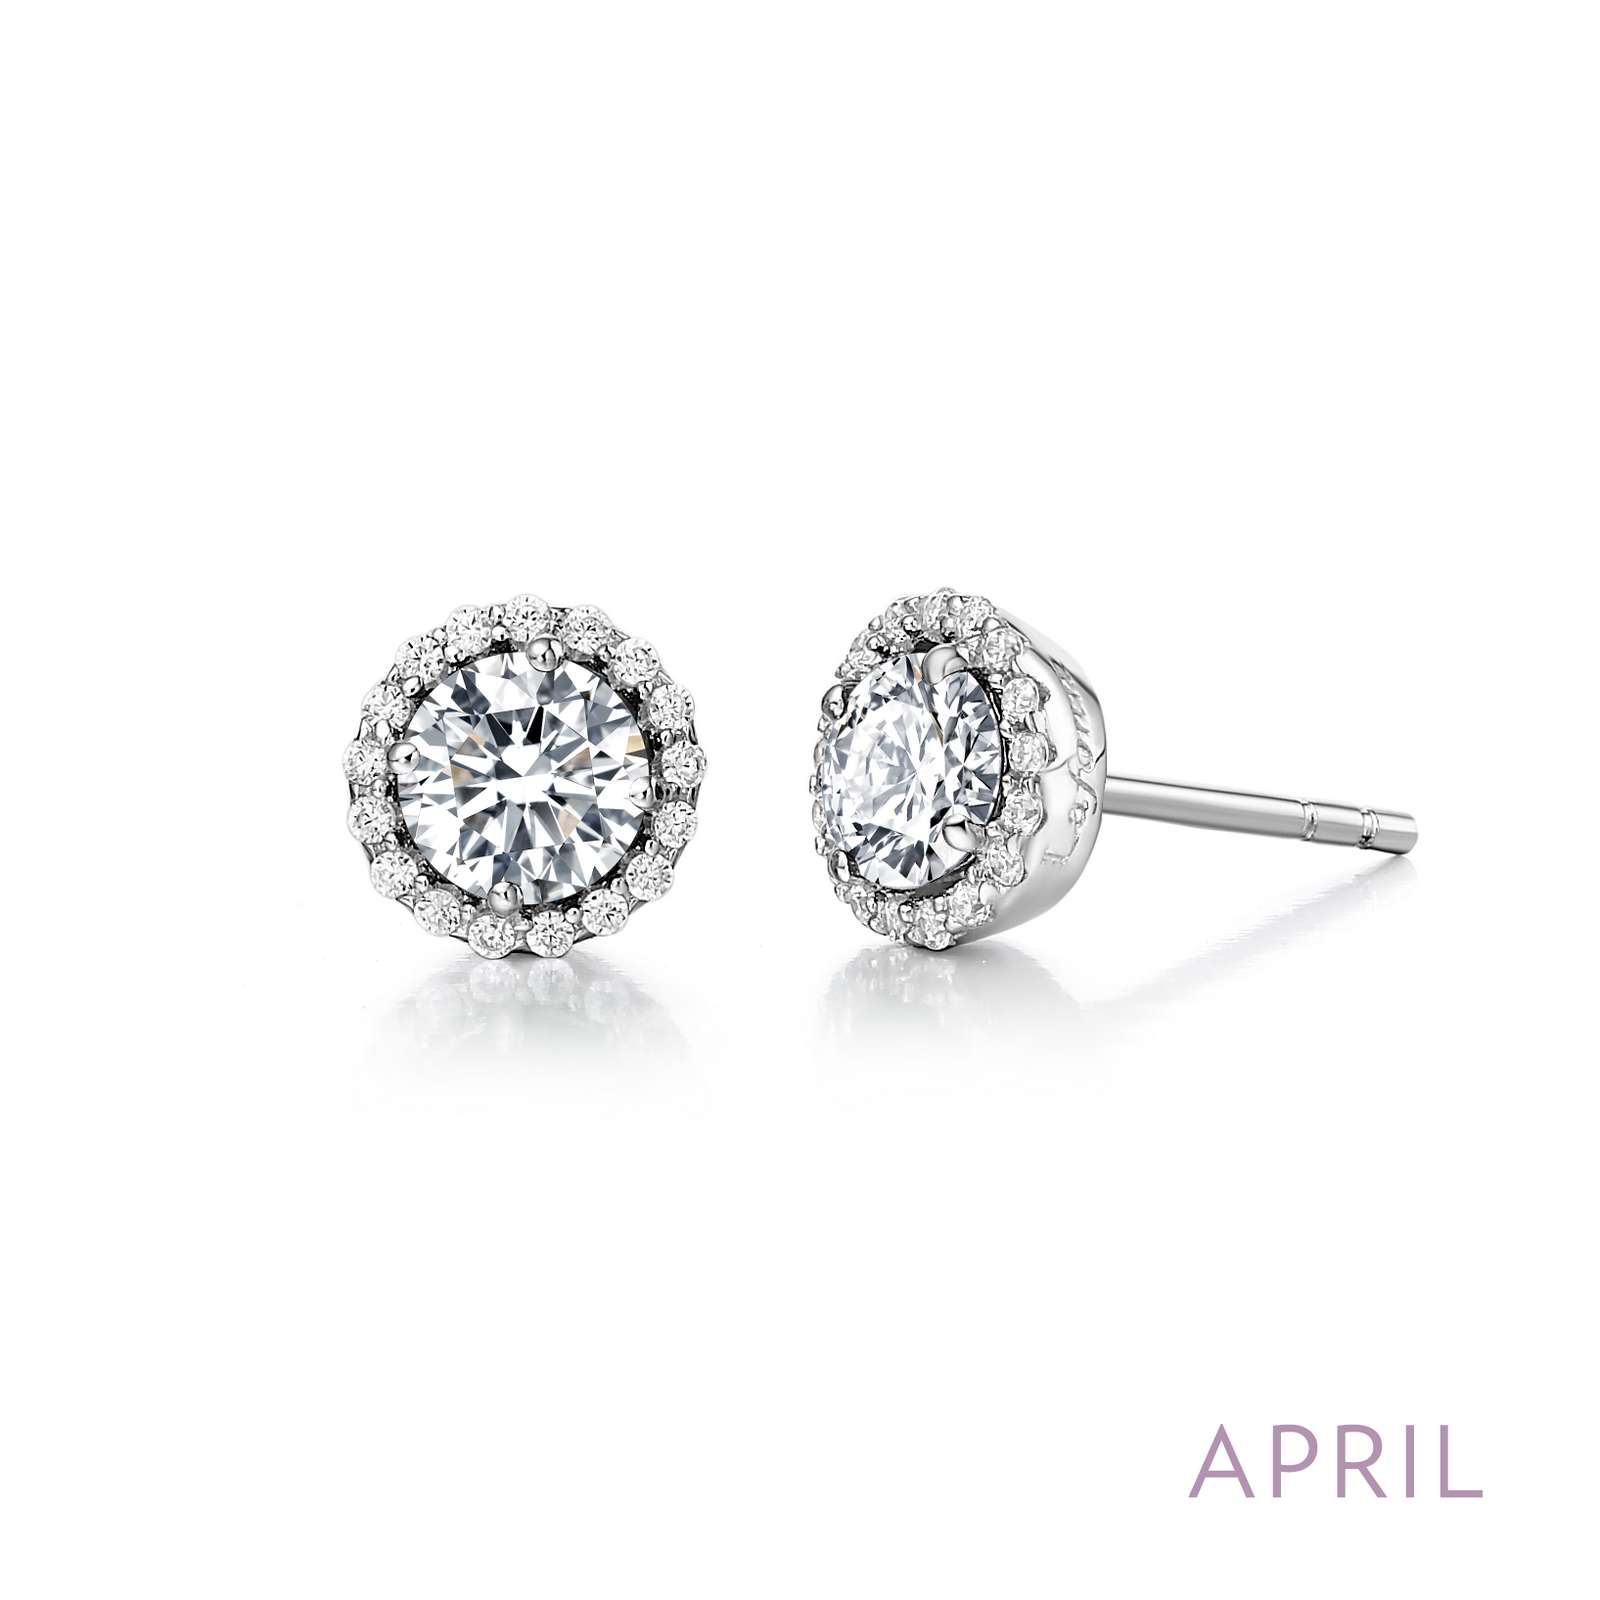 April - Diamond.  Adorn yourself with Lafonn's birthstone jewelry. These halo stud earrings are set with Lafonn's signature Lassaire simualted diamonds in sterling silver bonded with platinum.